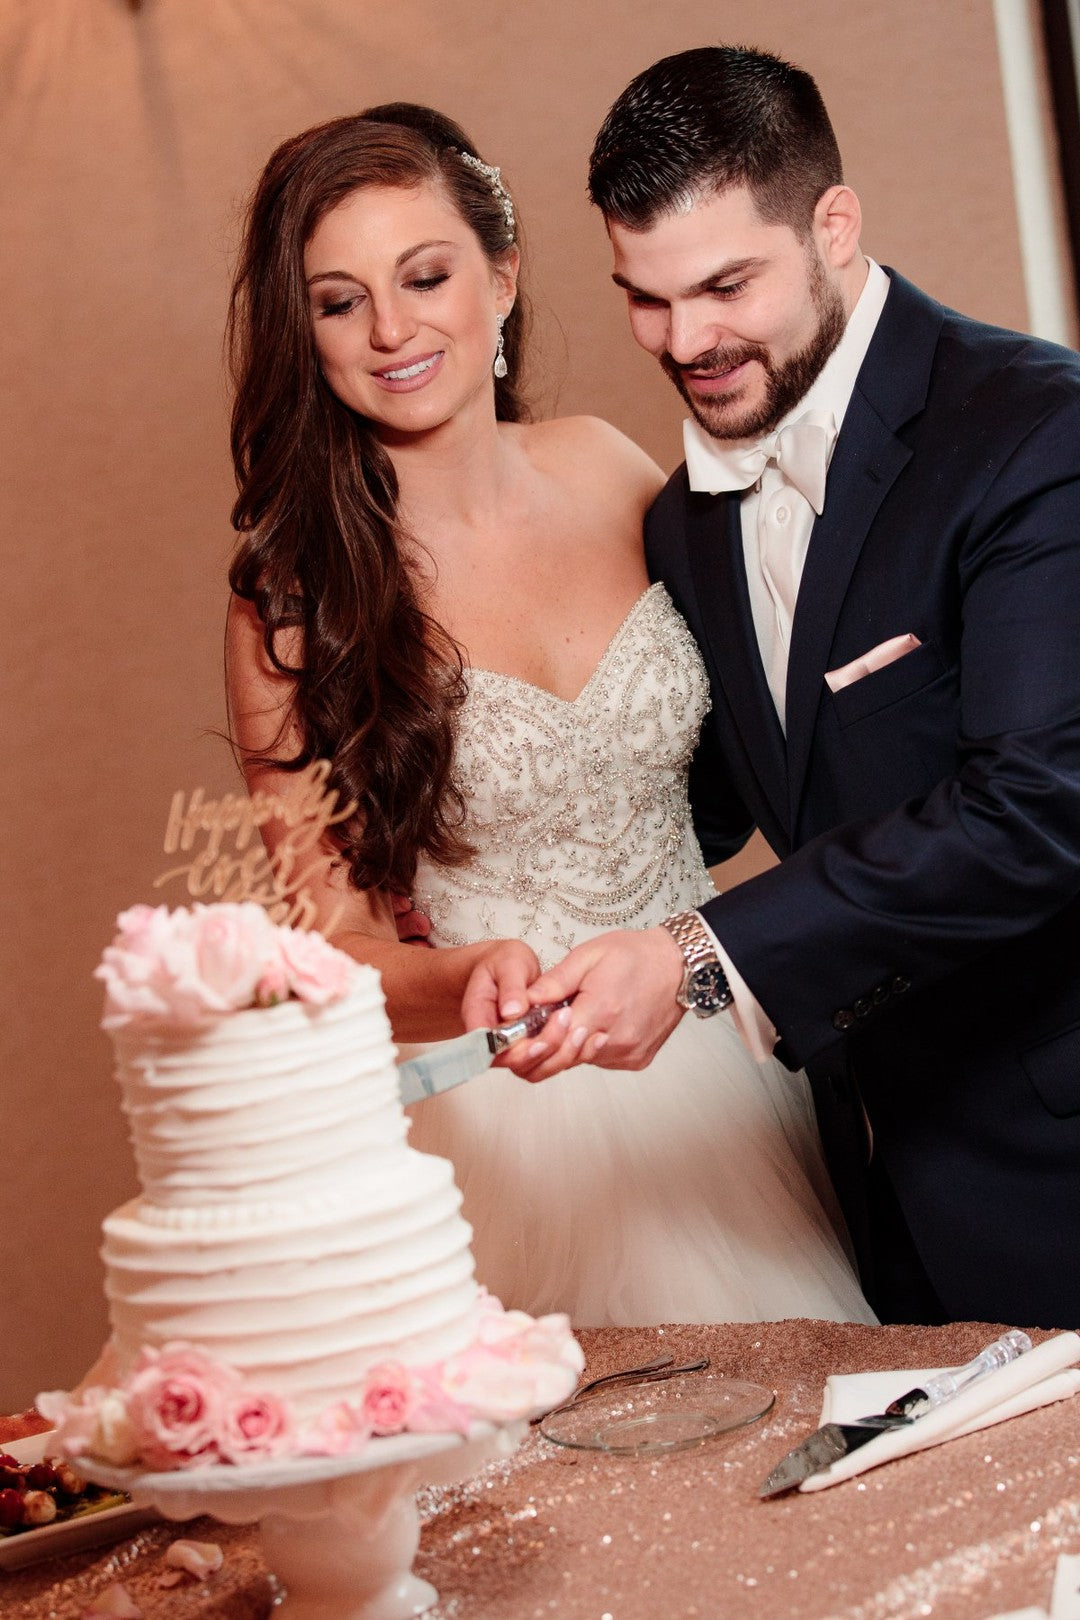 Bride and Groom Cutting Cake | A Gorgeous Grand Wedding in Ohio | Kate Aspen